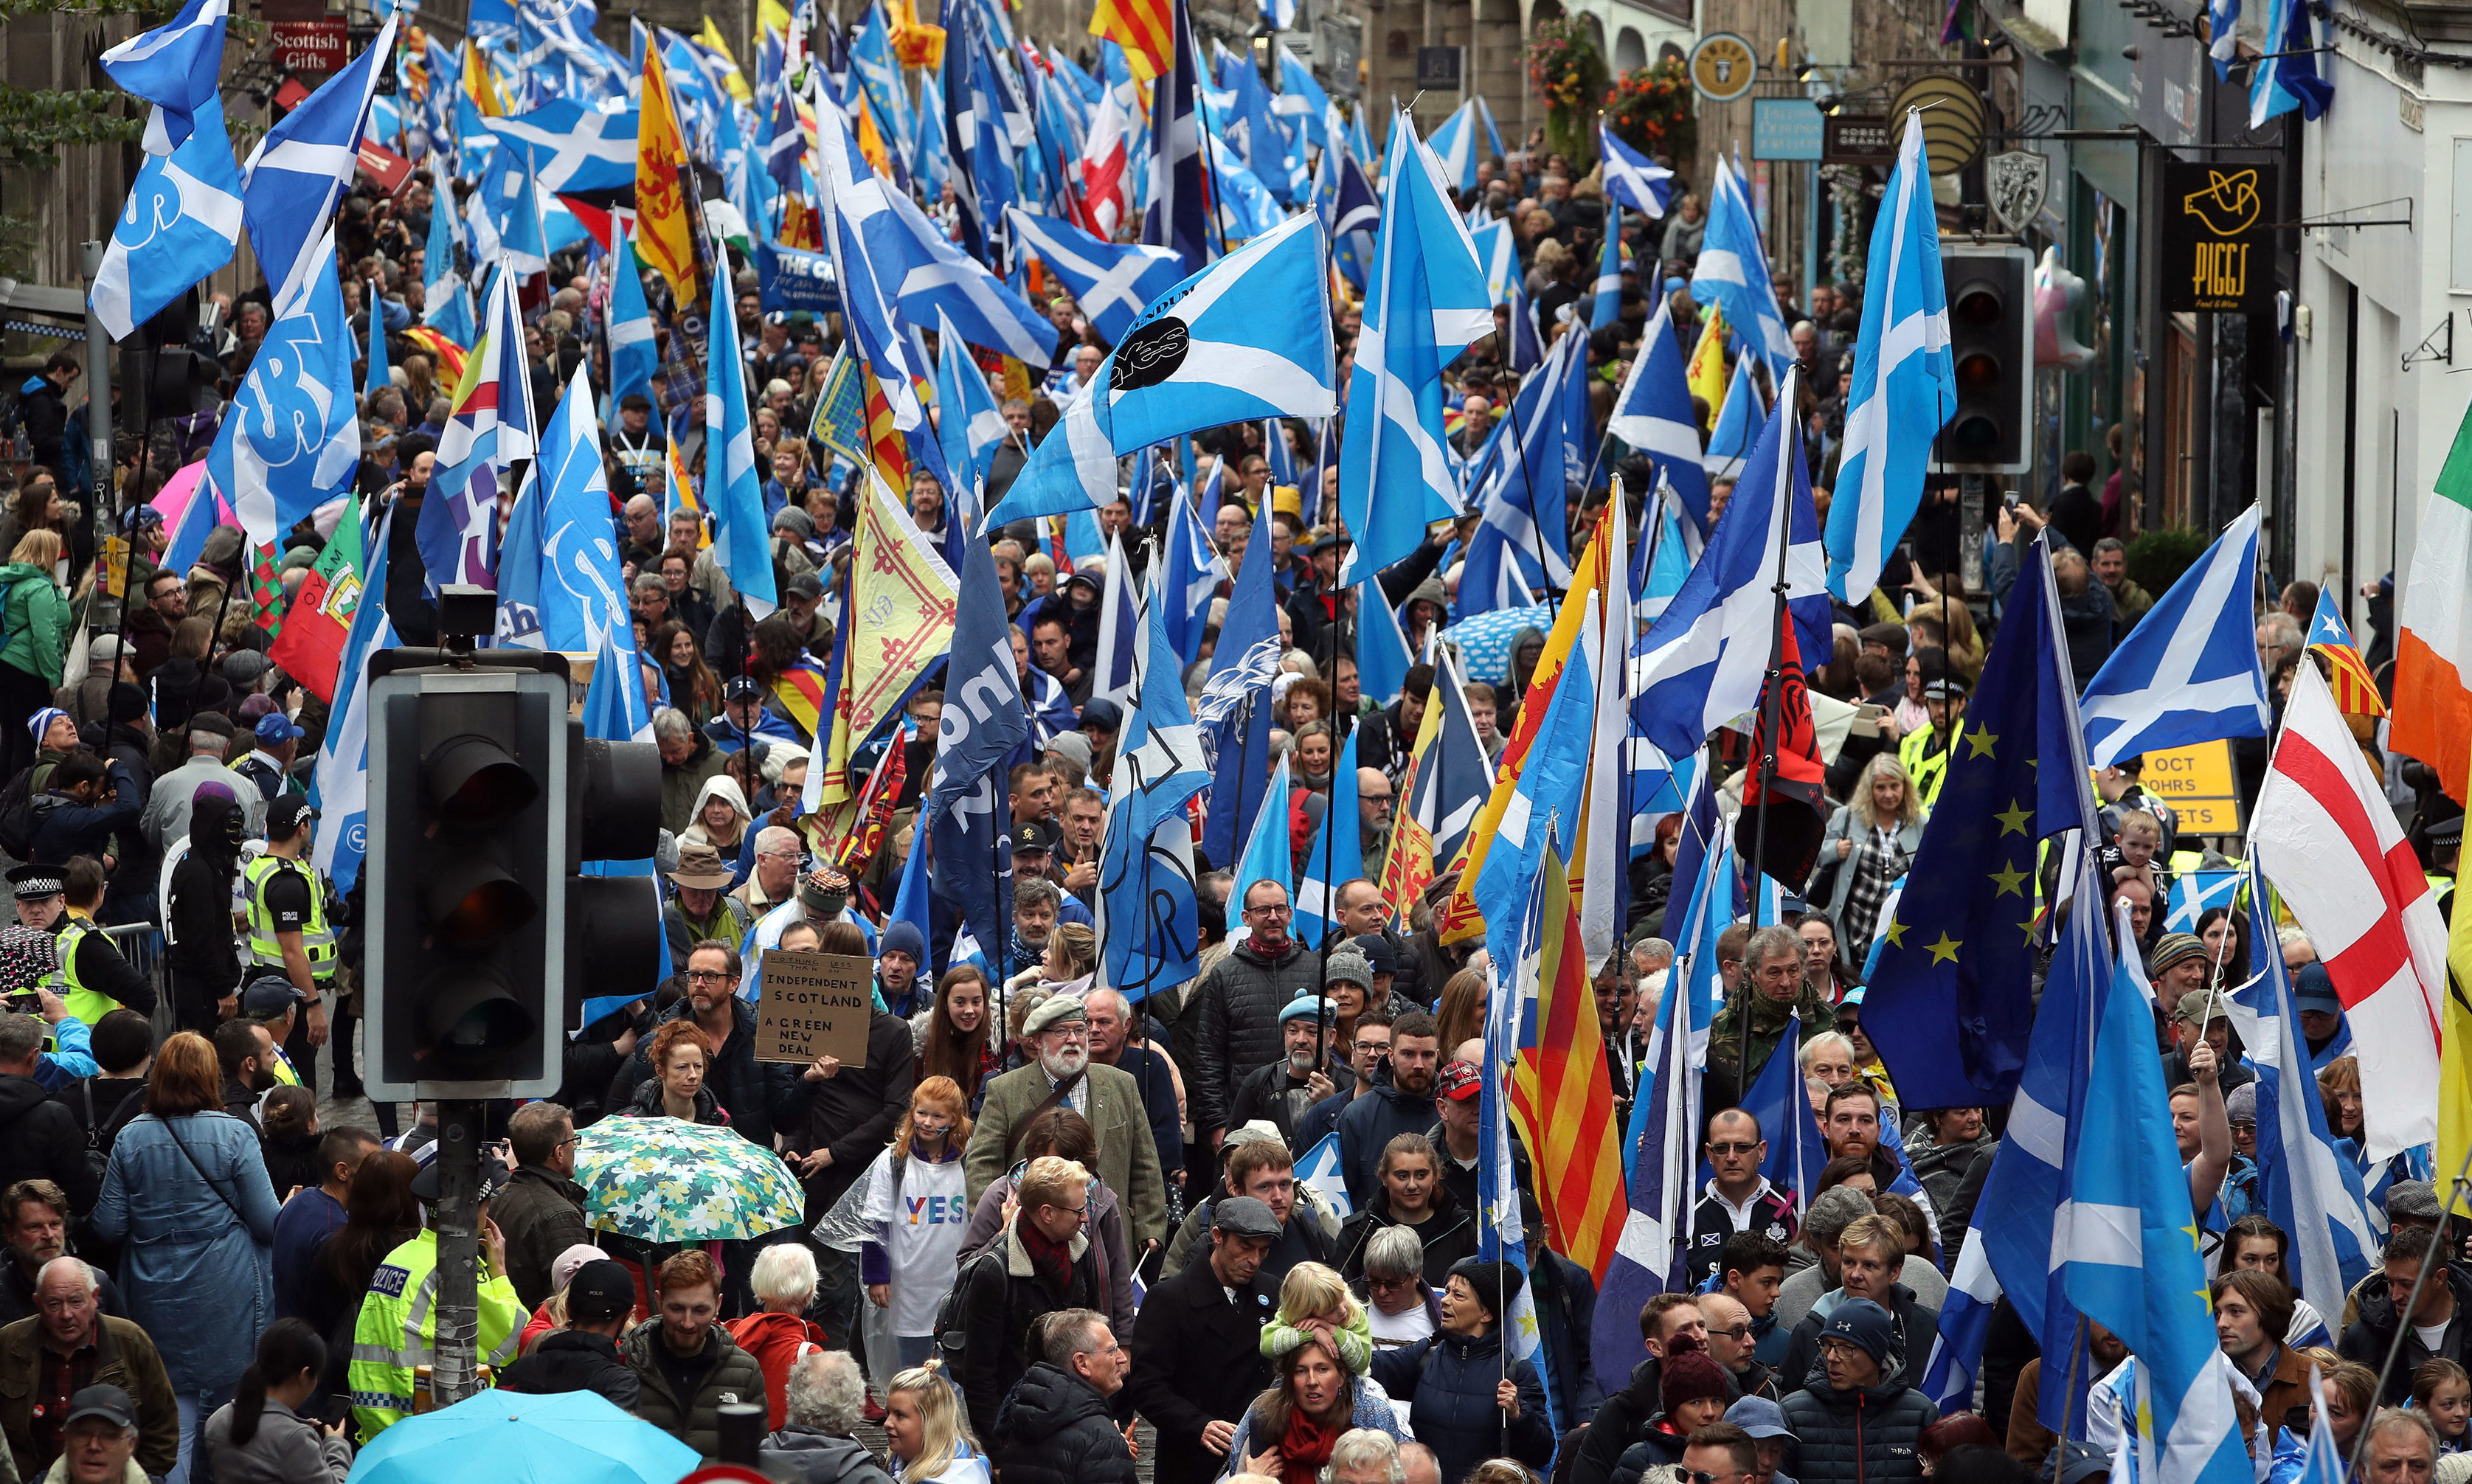 Scottish independence supporters march through Edinburgh during an All Under One Banner march. on Saturday, October 5.